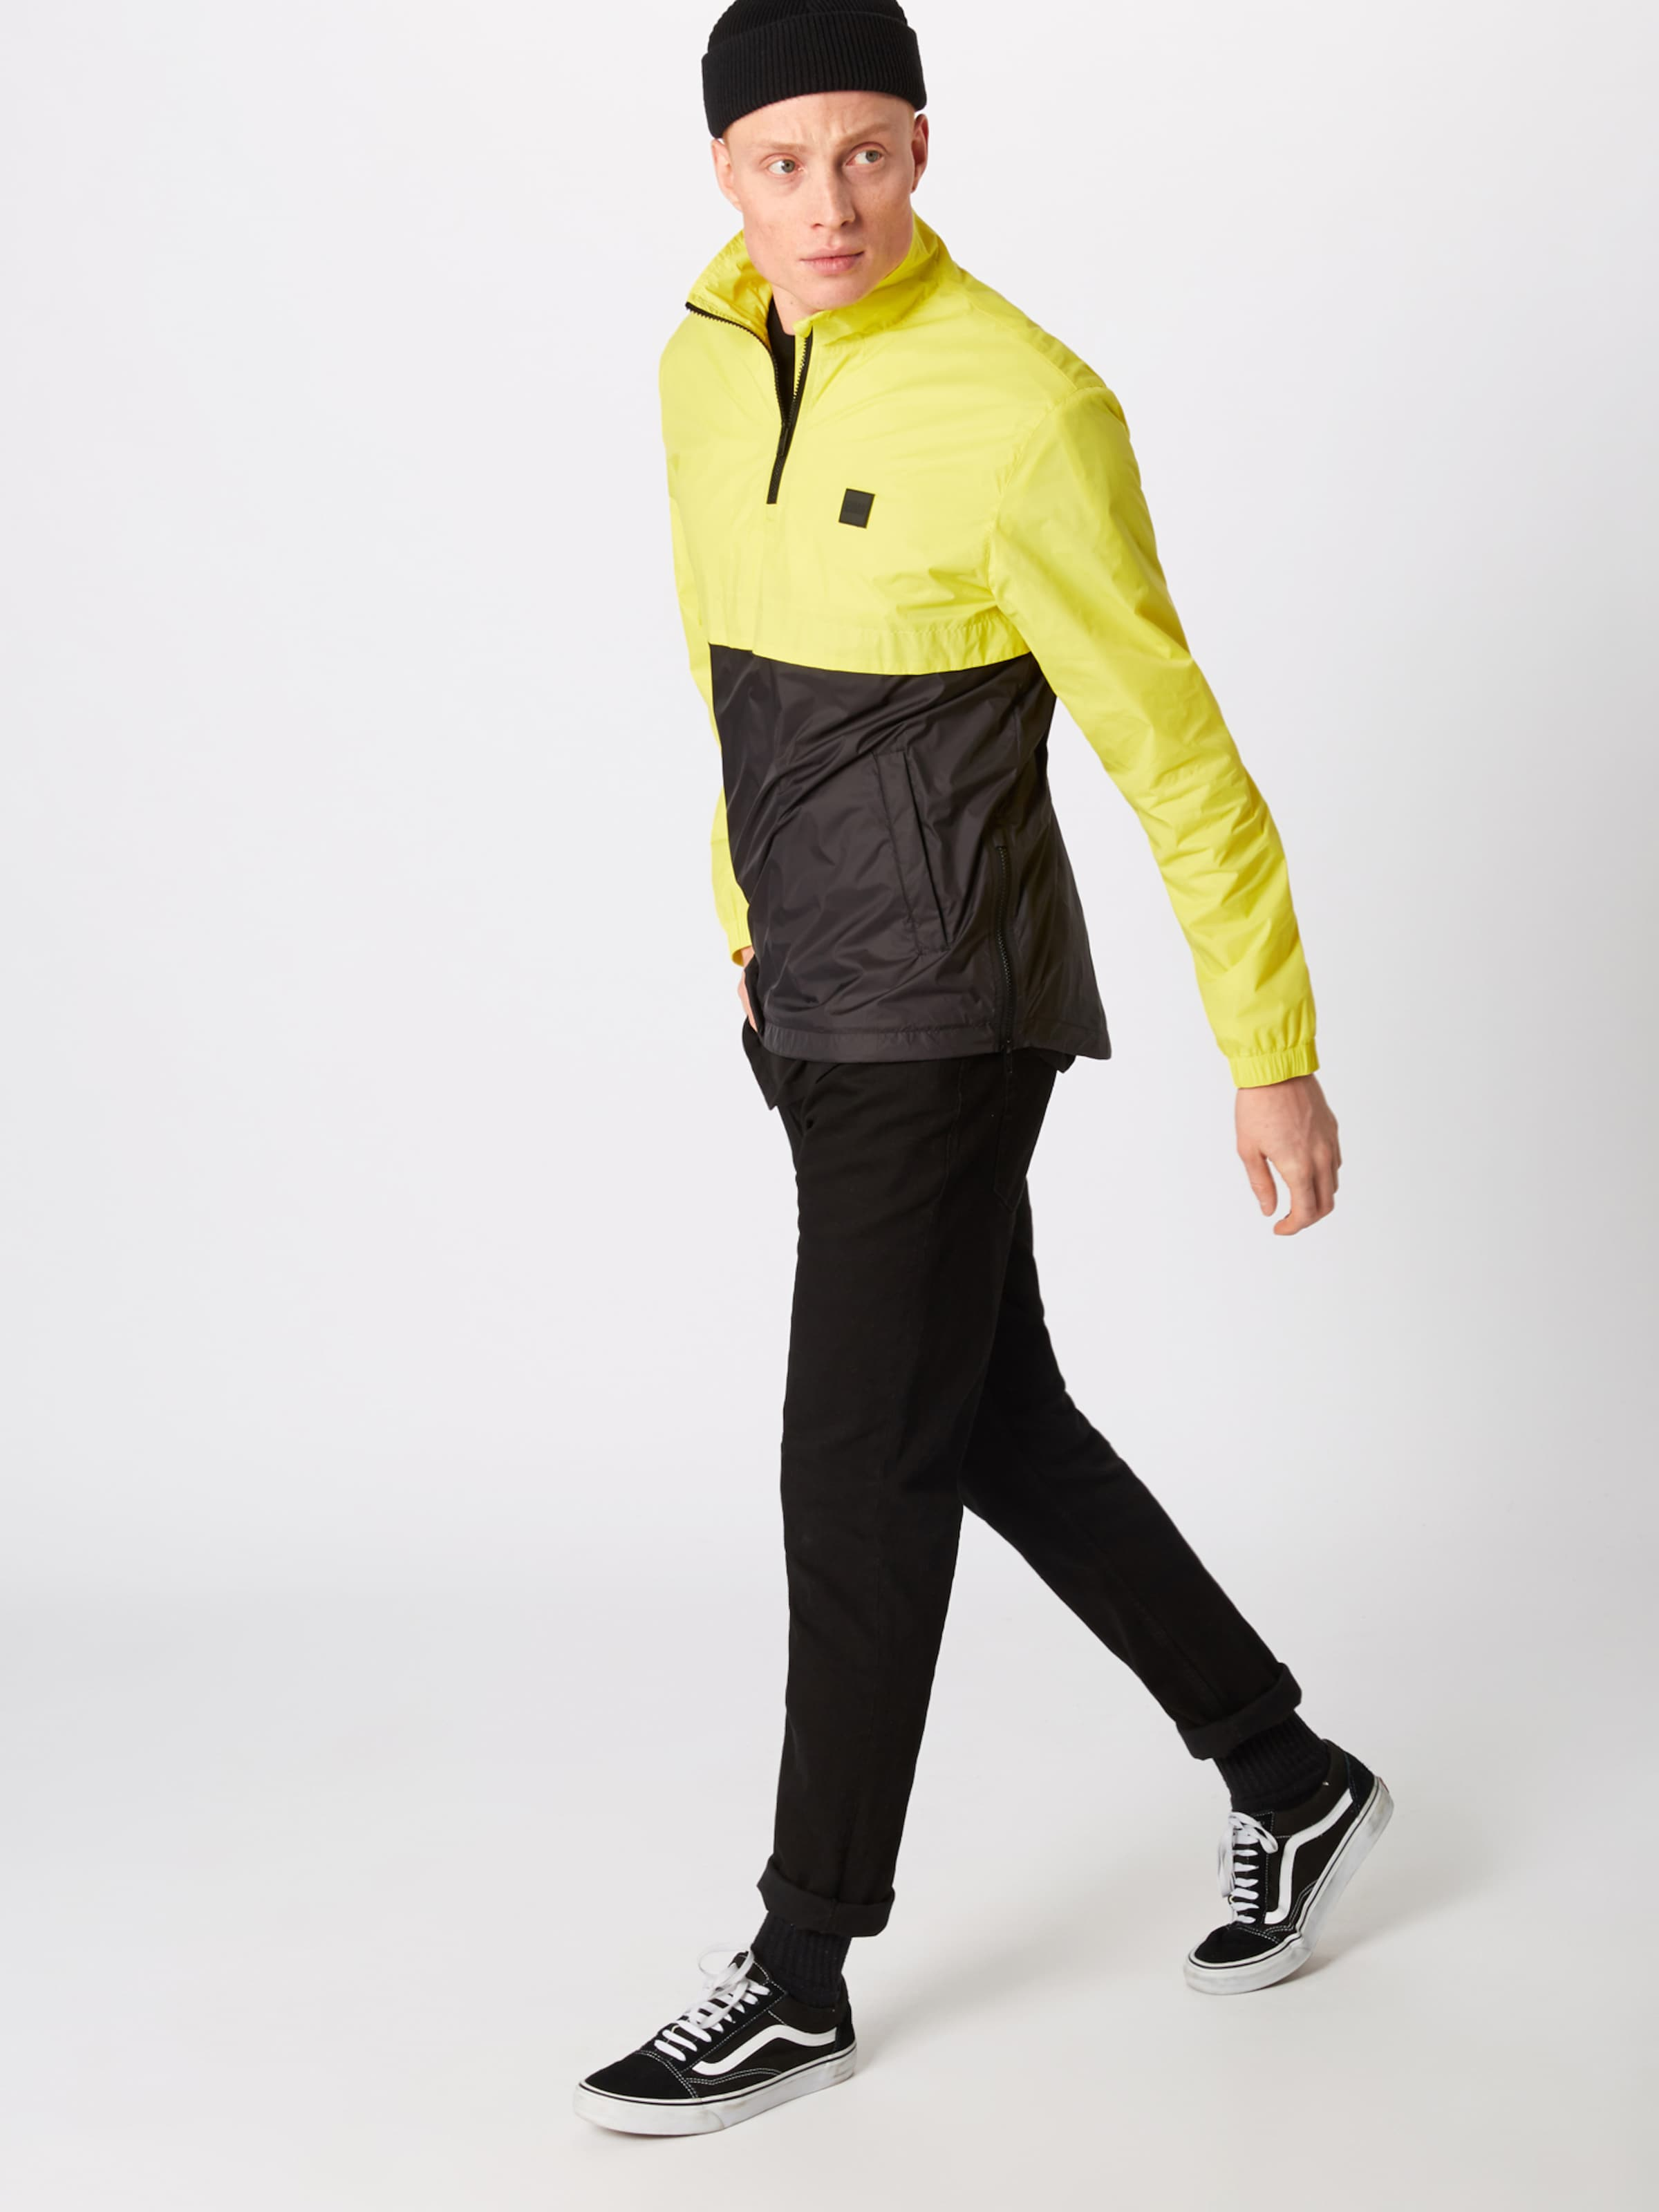 Collar In Gelb 'stand Jacket' Classics Up Pull Over Urban Jacke N0wOvmy8n